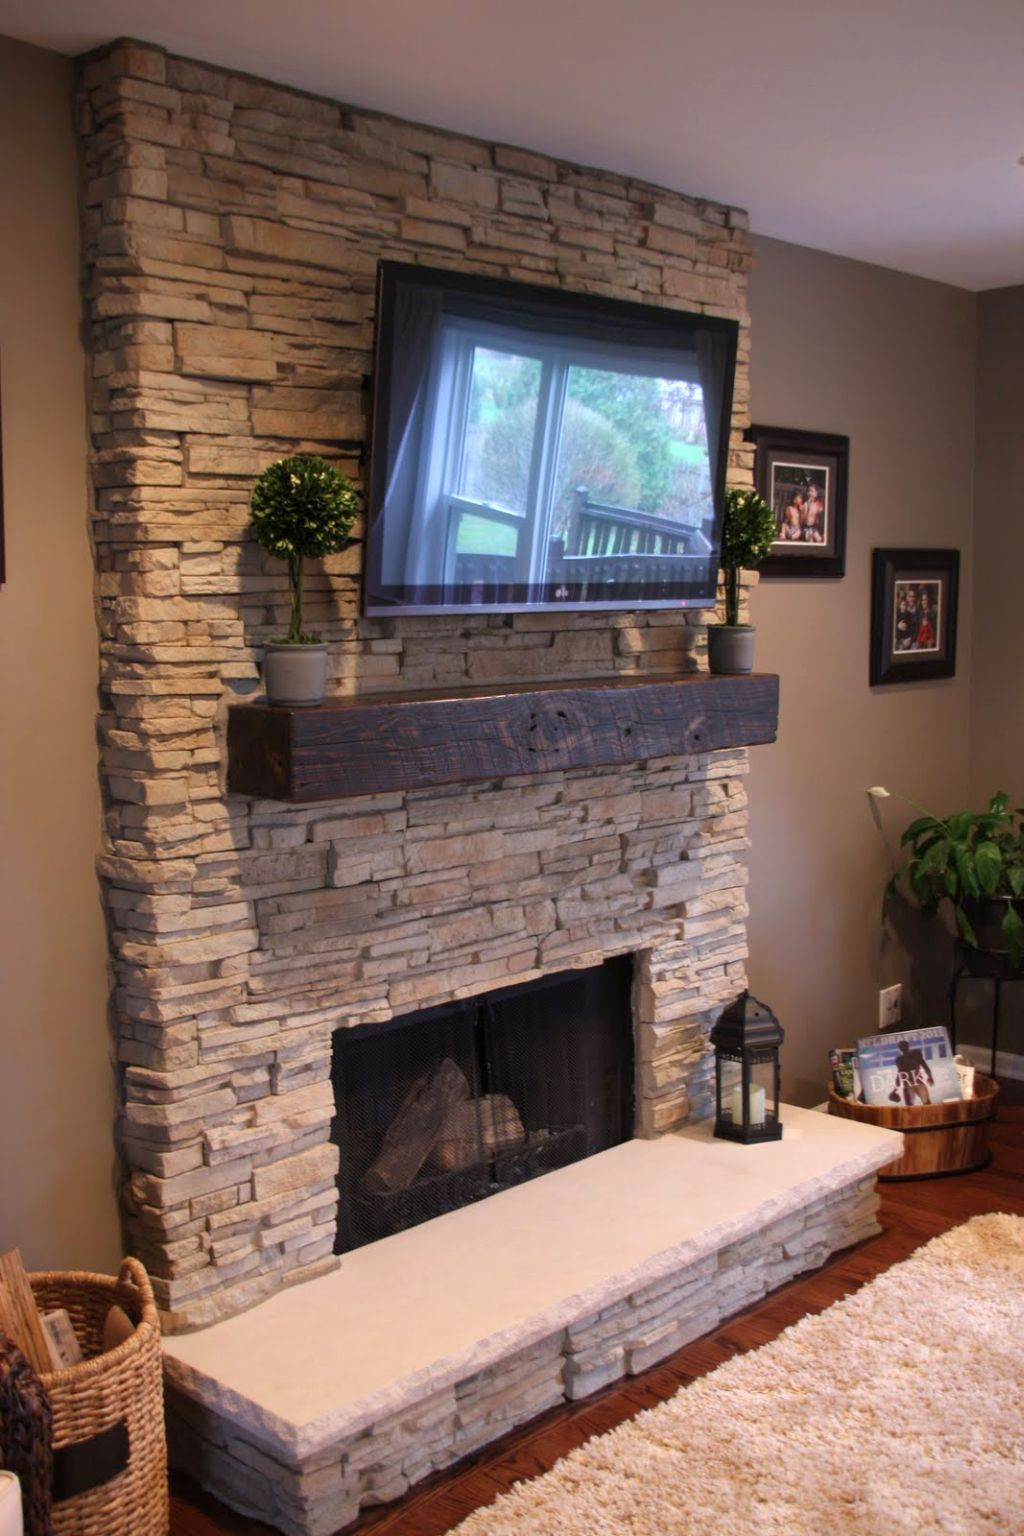 Get inspired with this amazing photo of stack stone fireplaces with plasma TV mounted. You can